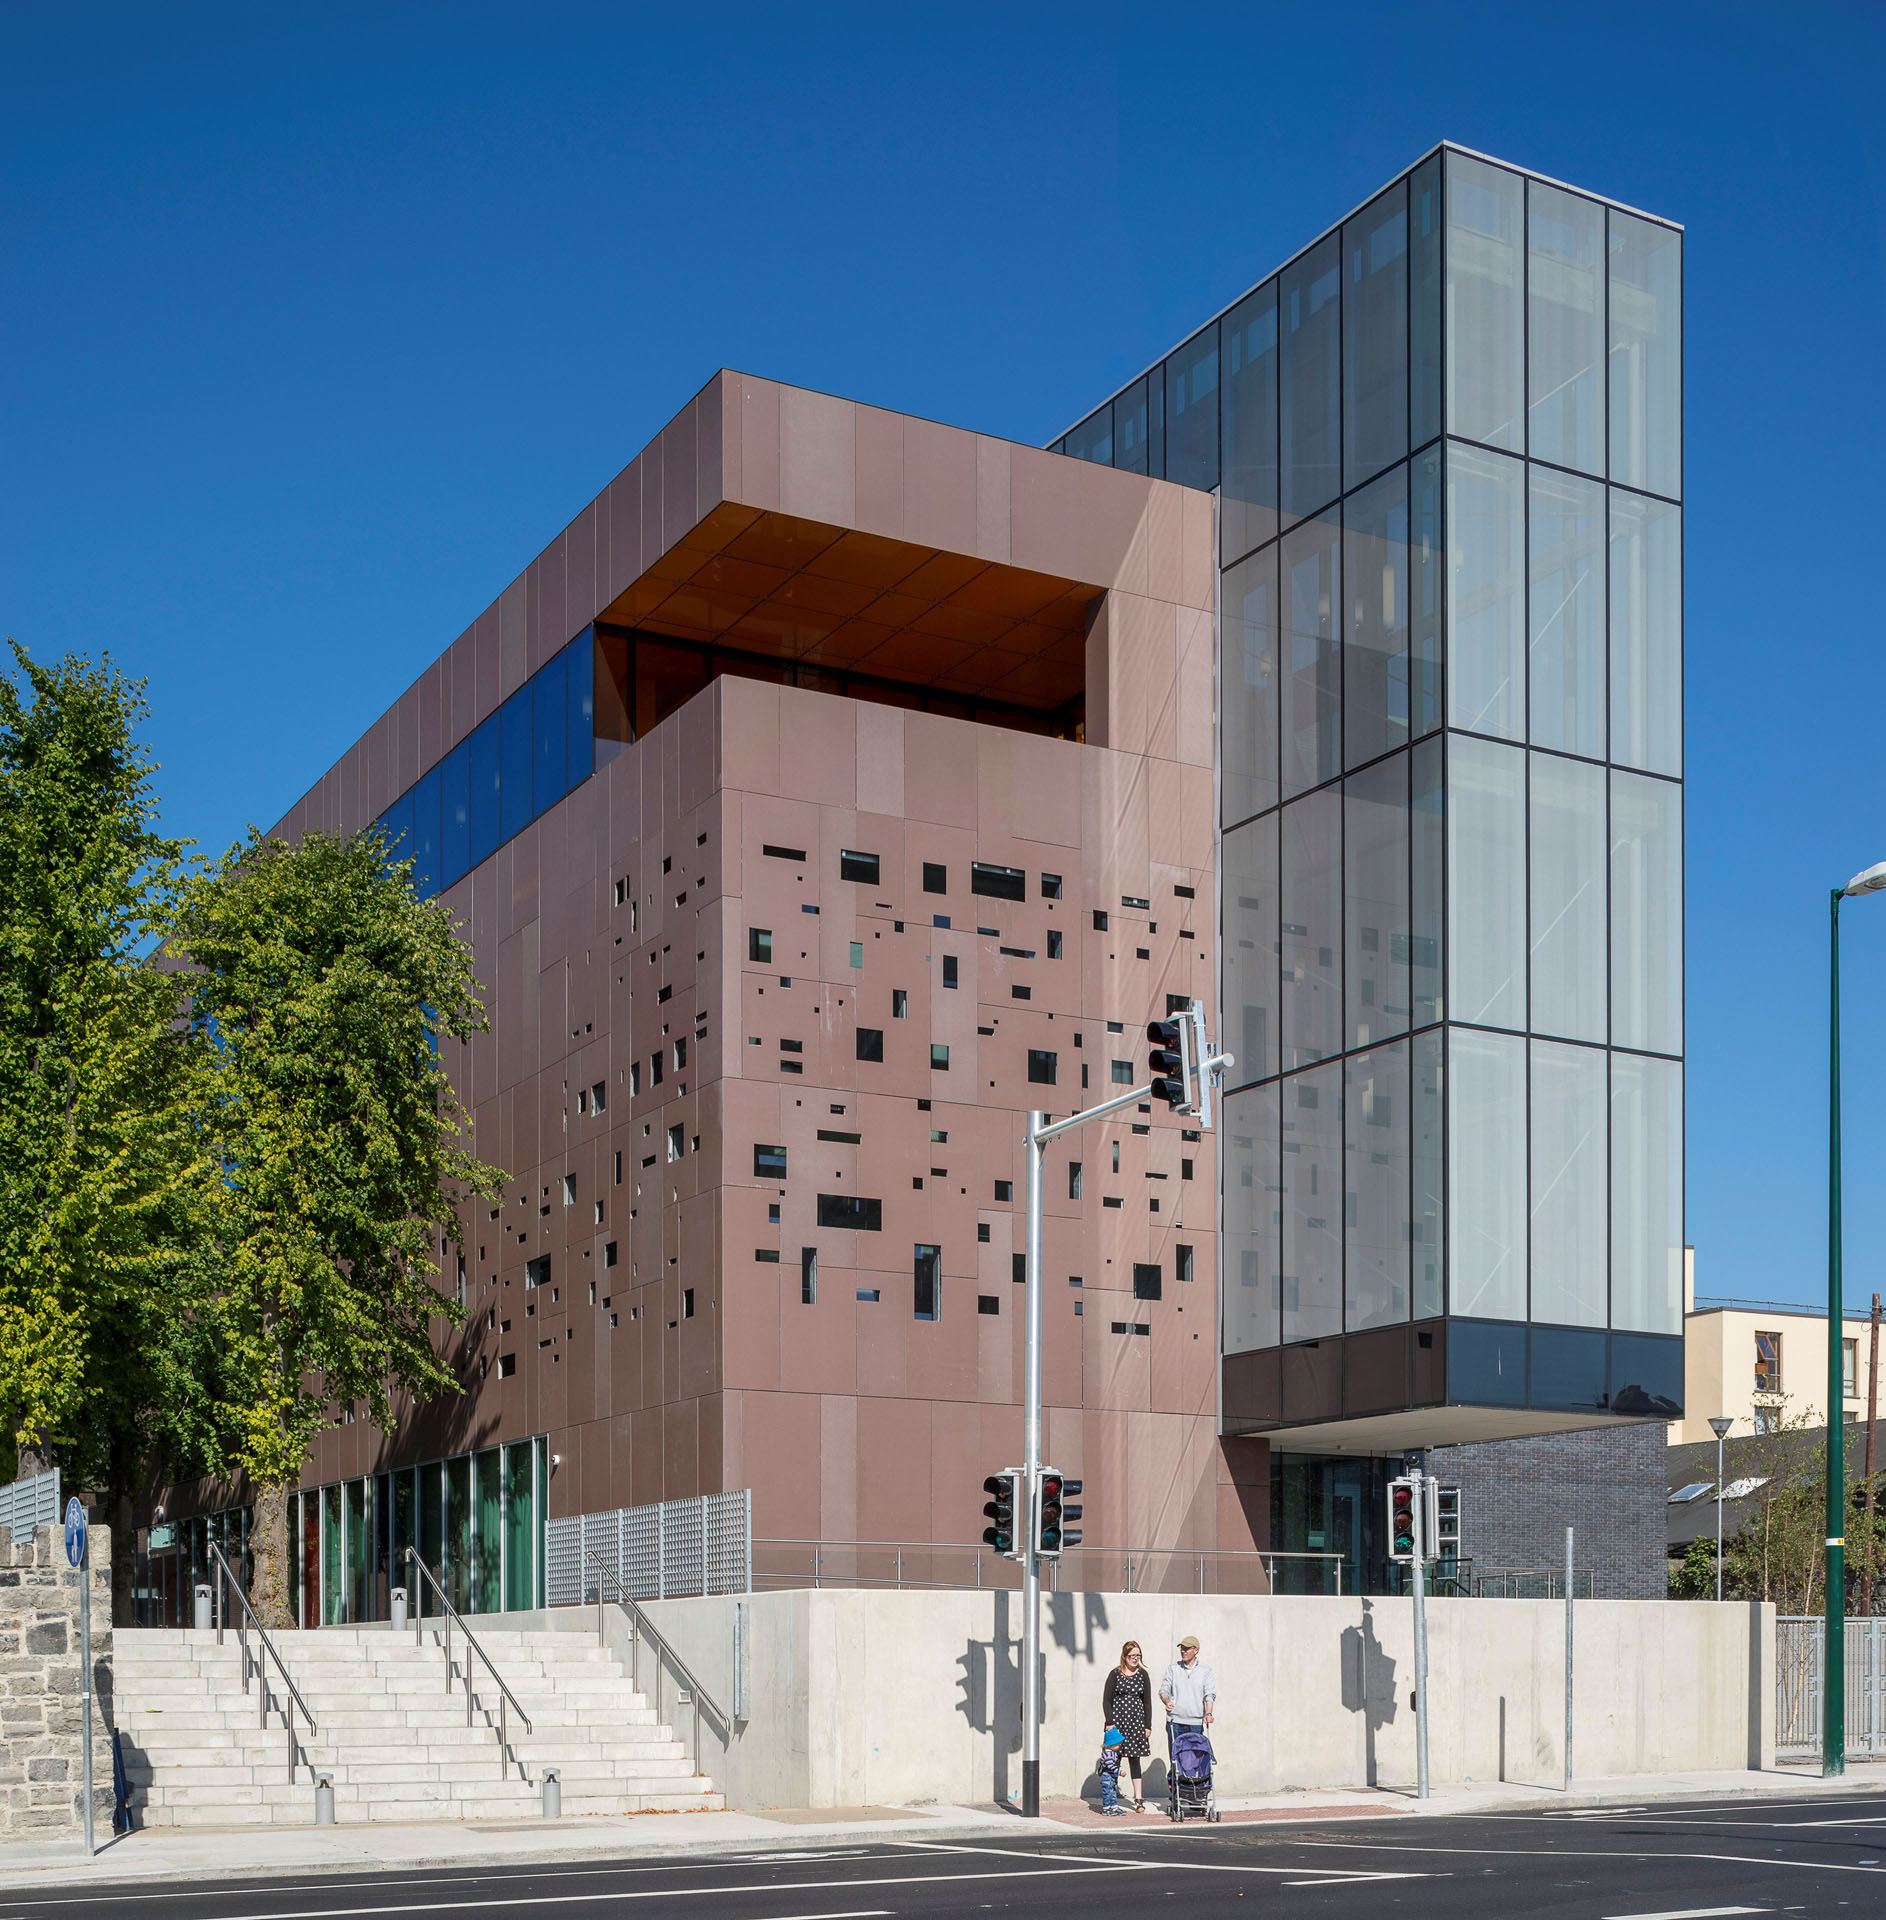 Cregan Library St Patrick's Campus DCU Dublin City University building architecture design exterior view